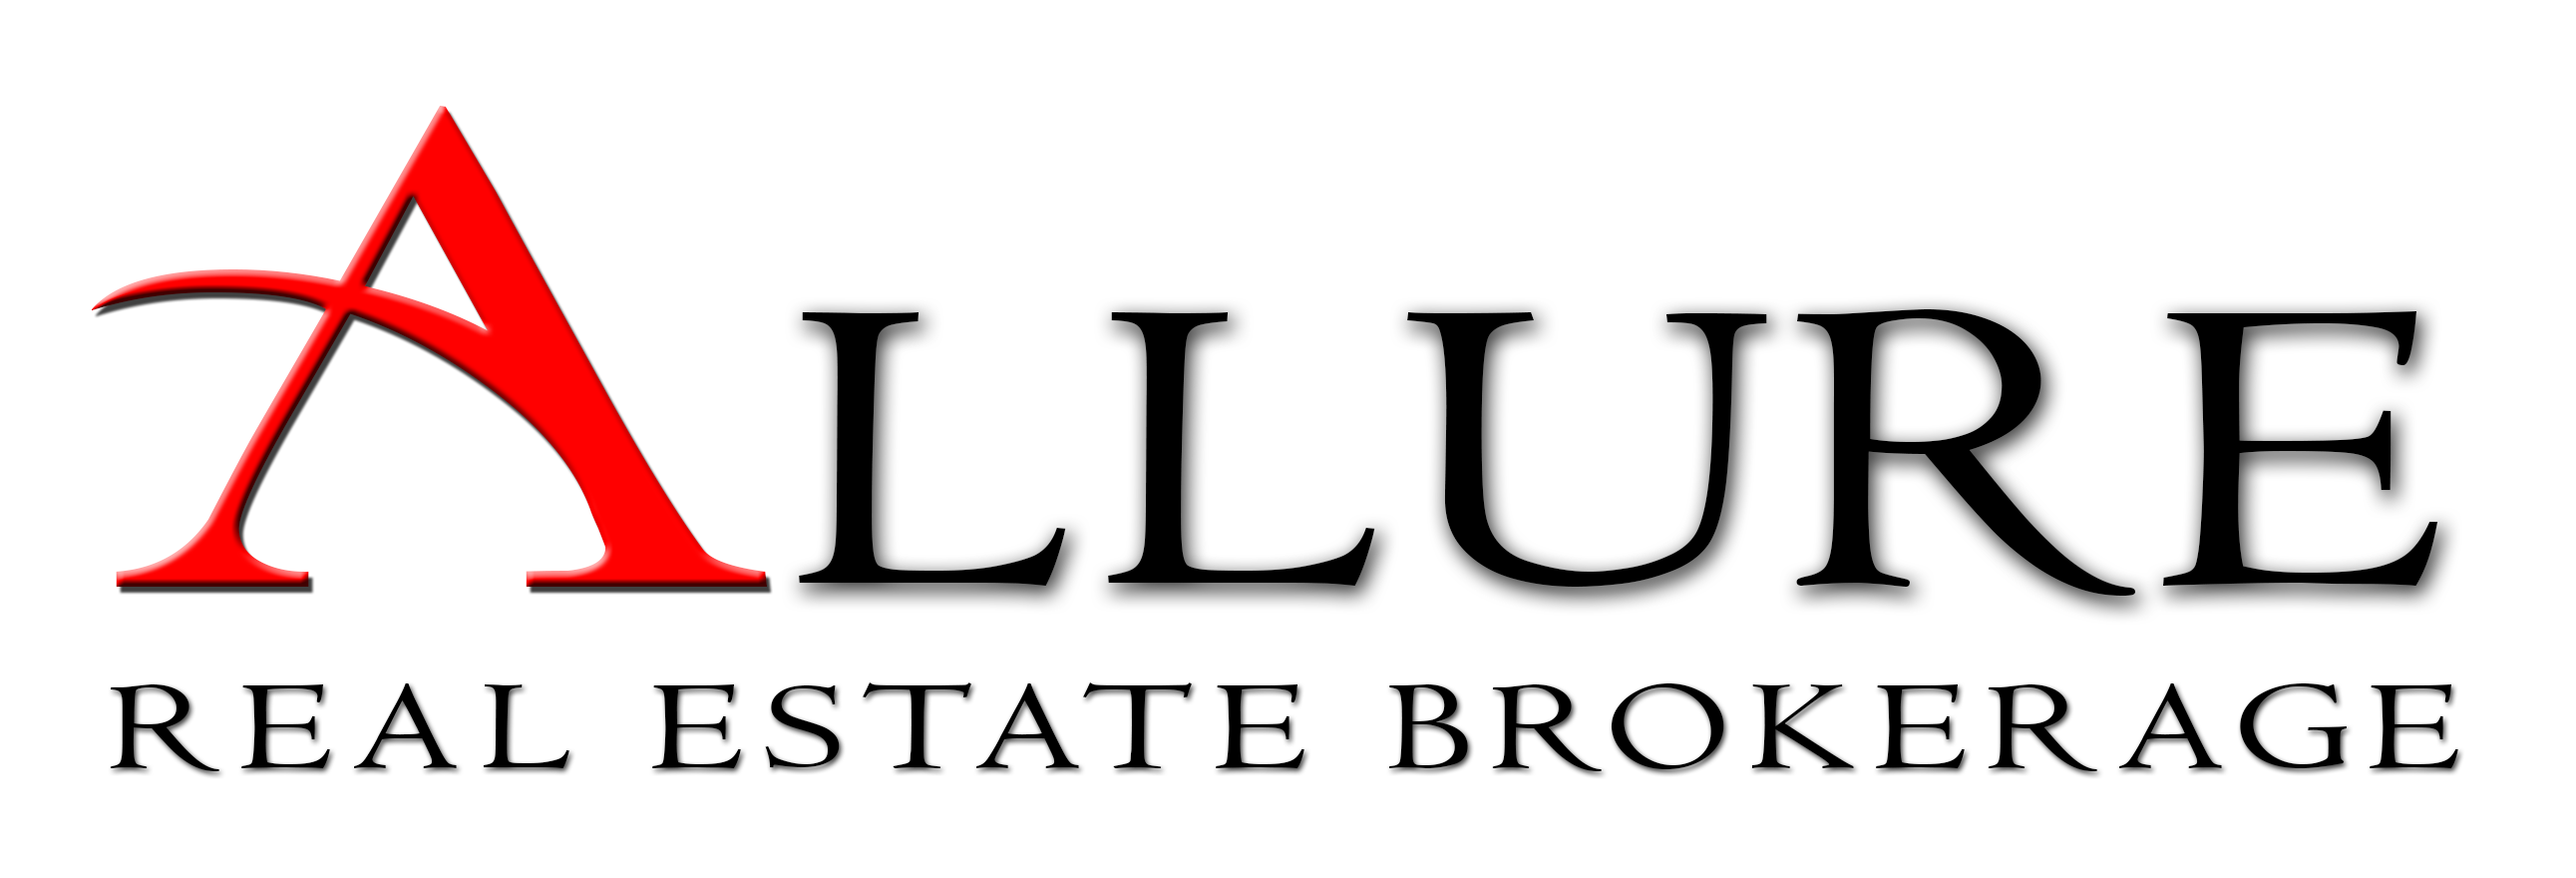 Colorado- Allure Real Estate Brokerage